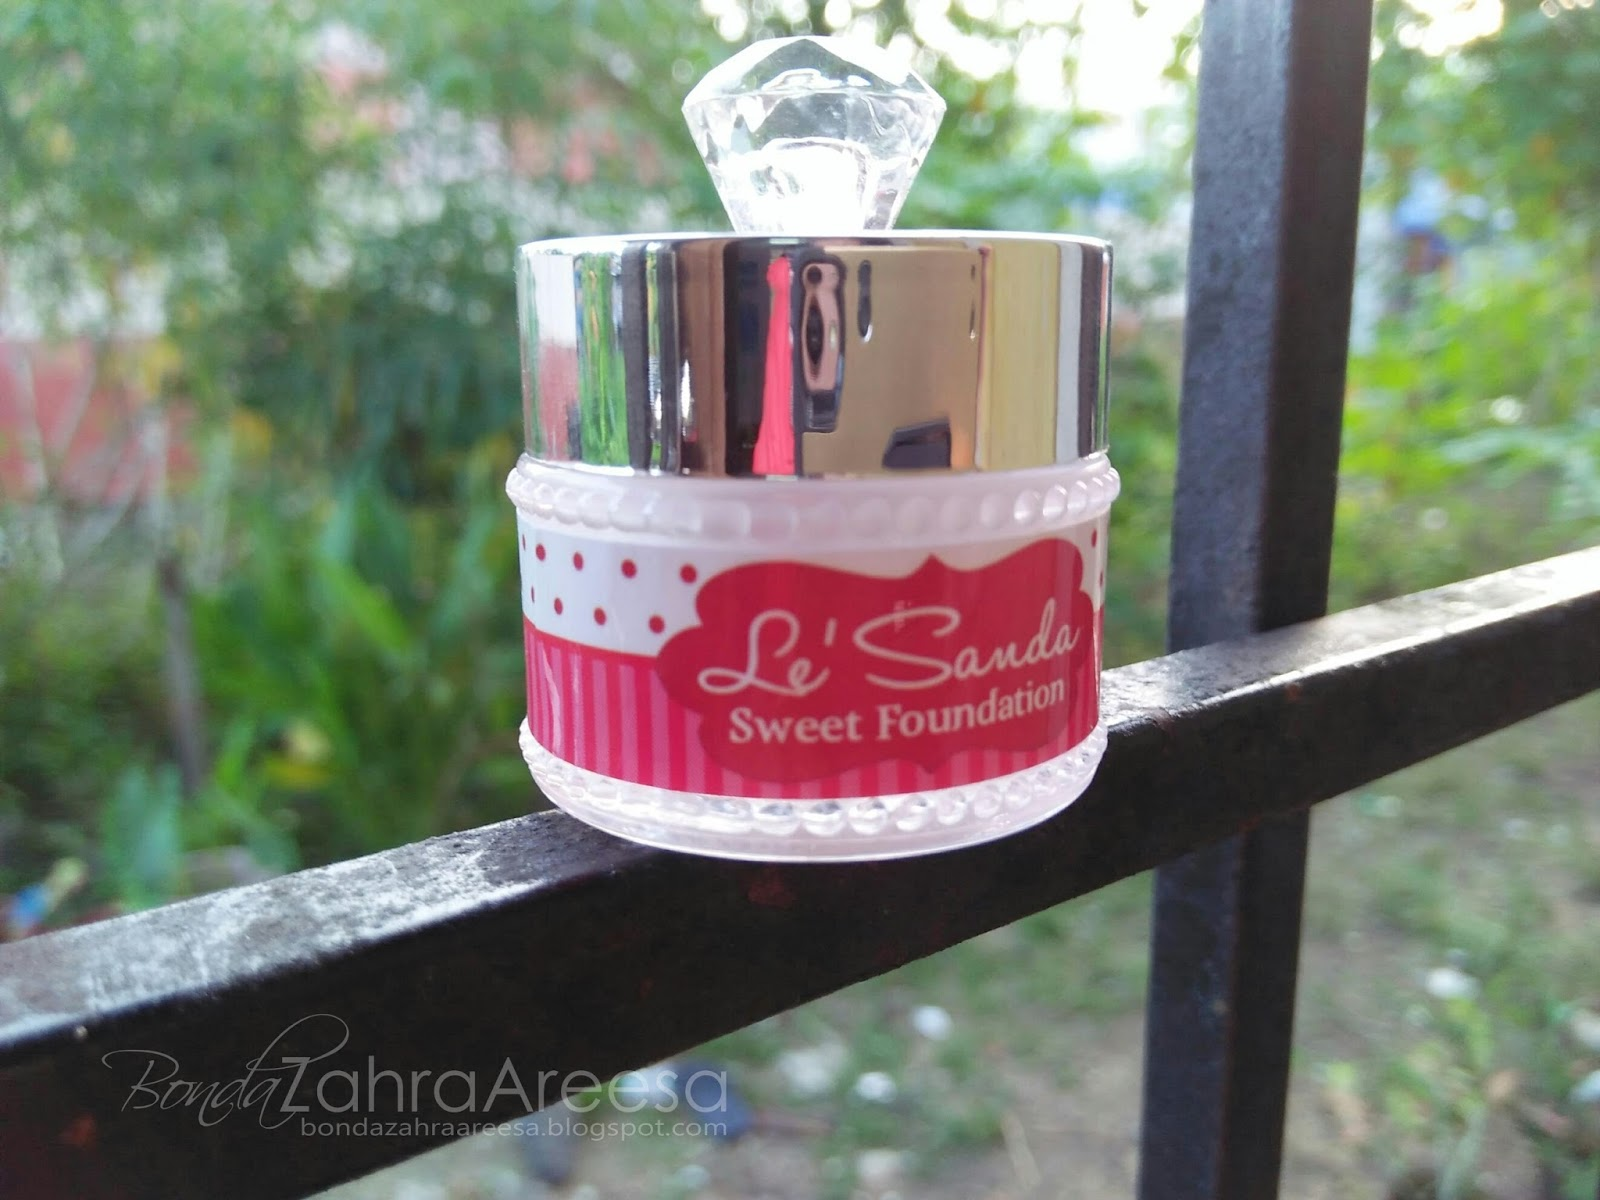 Beli Le'sanda Sweet Foundation Dapat Freegift